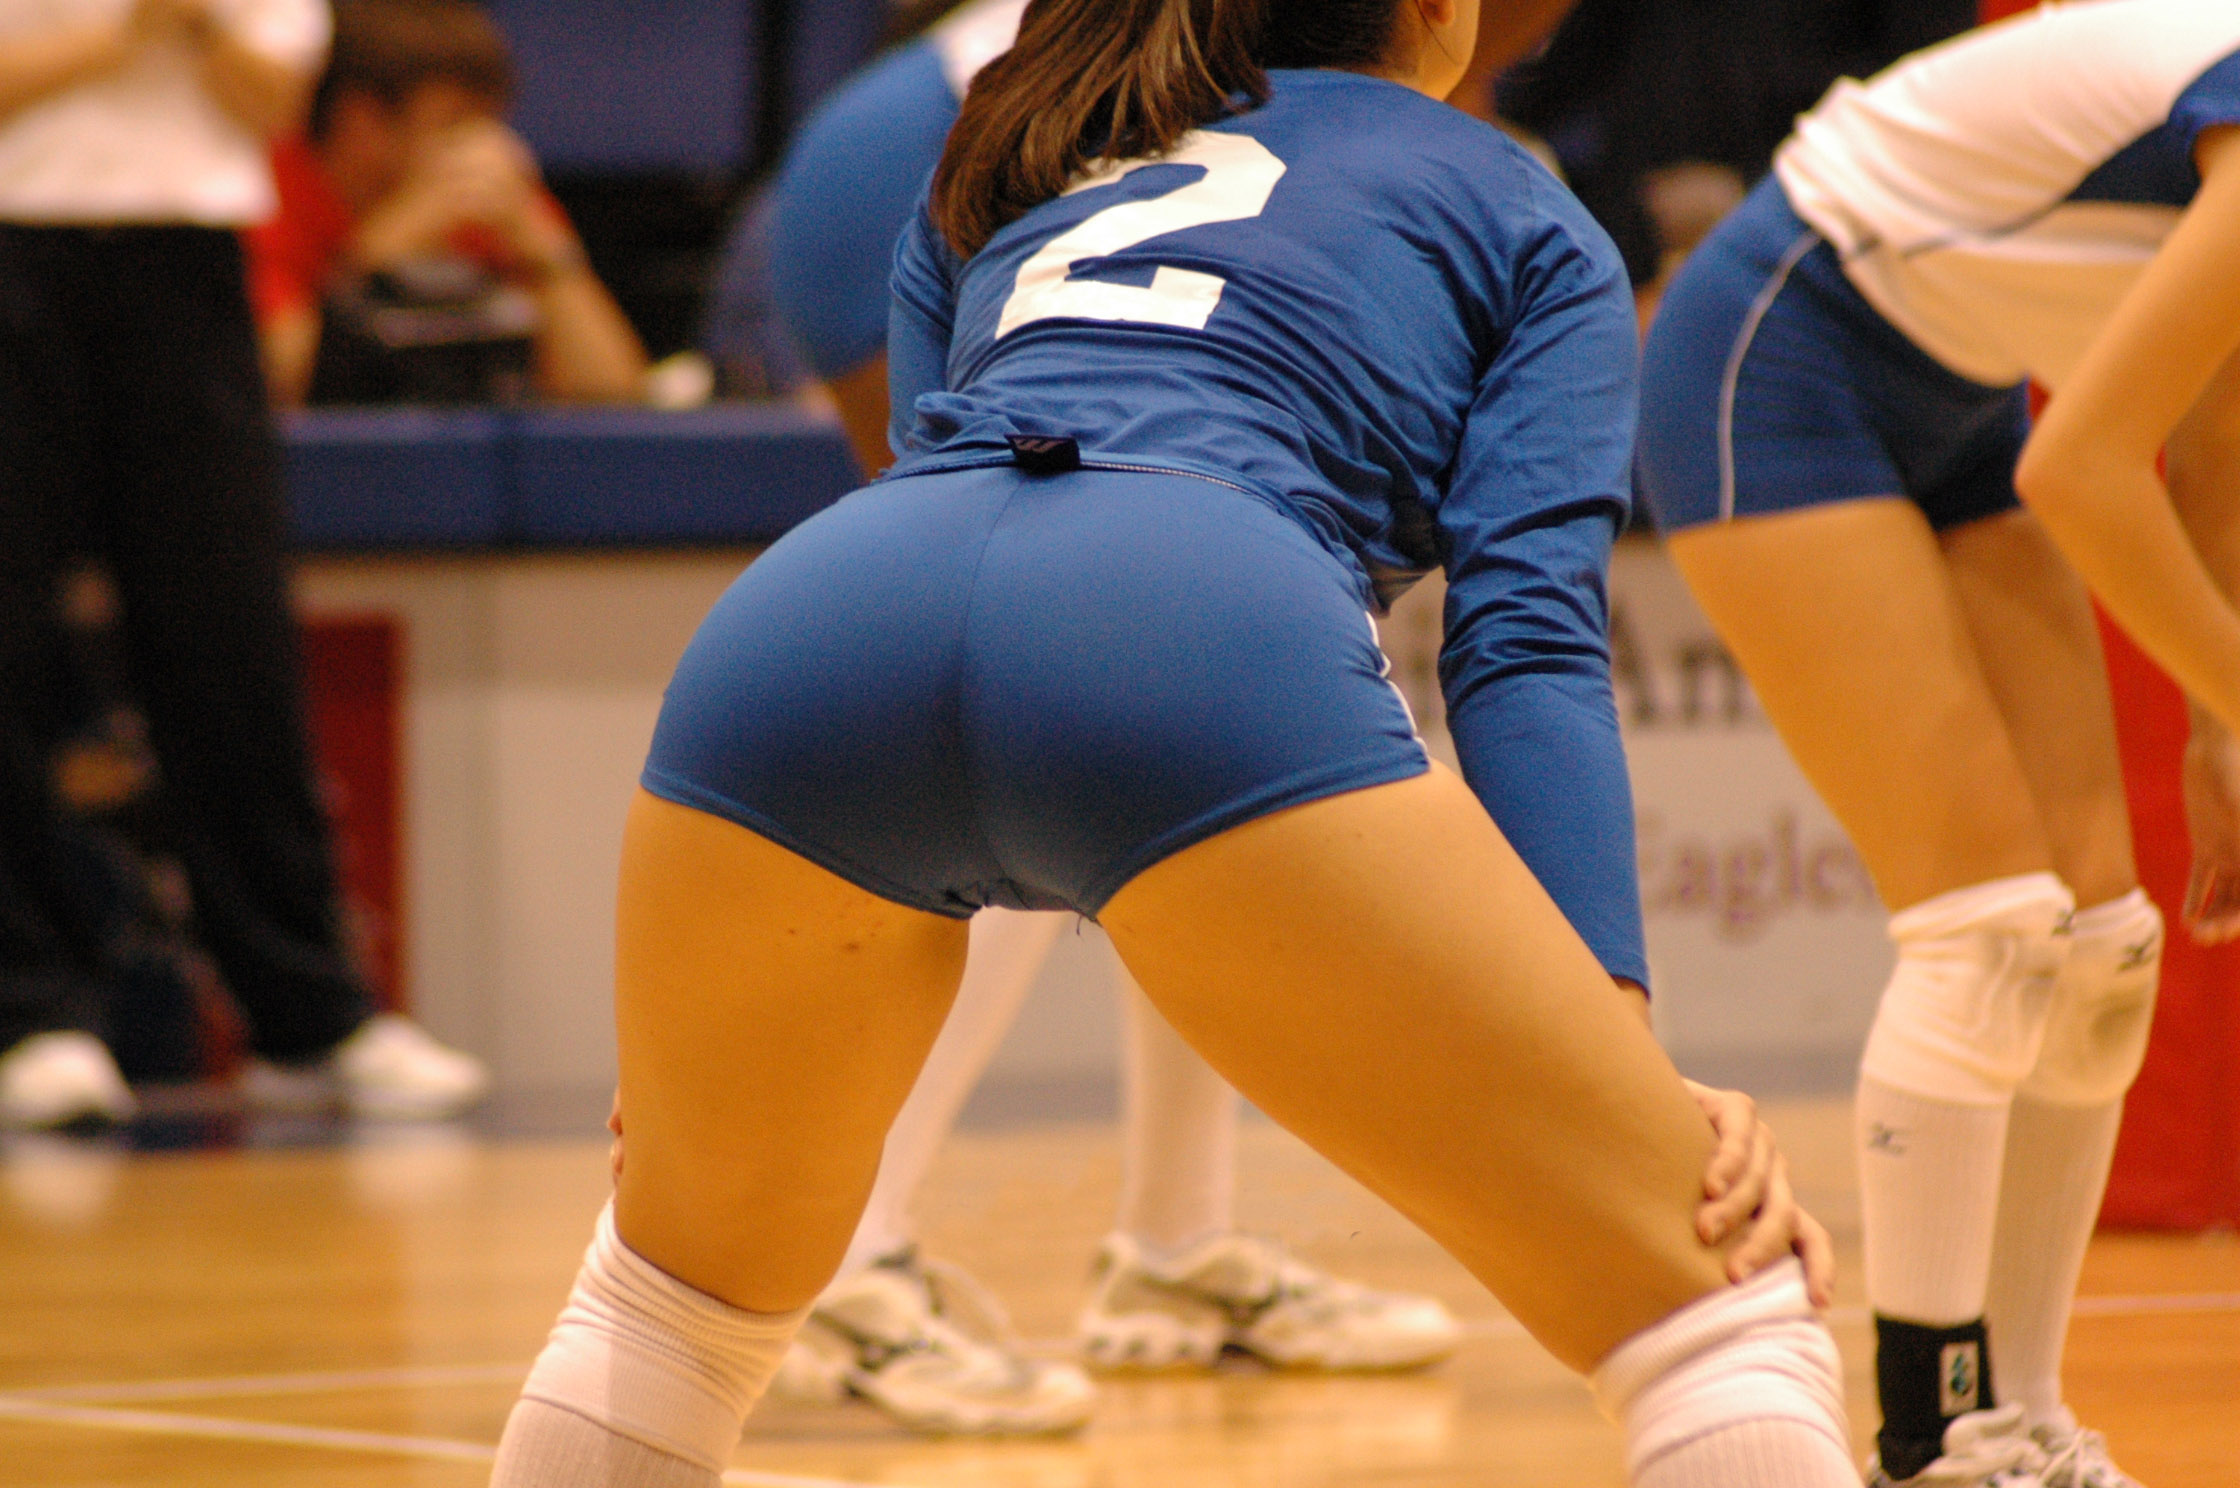 nude college volleyball